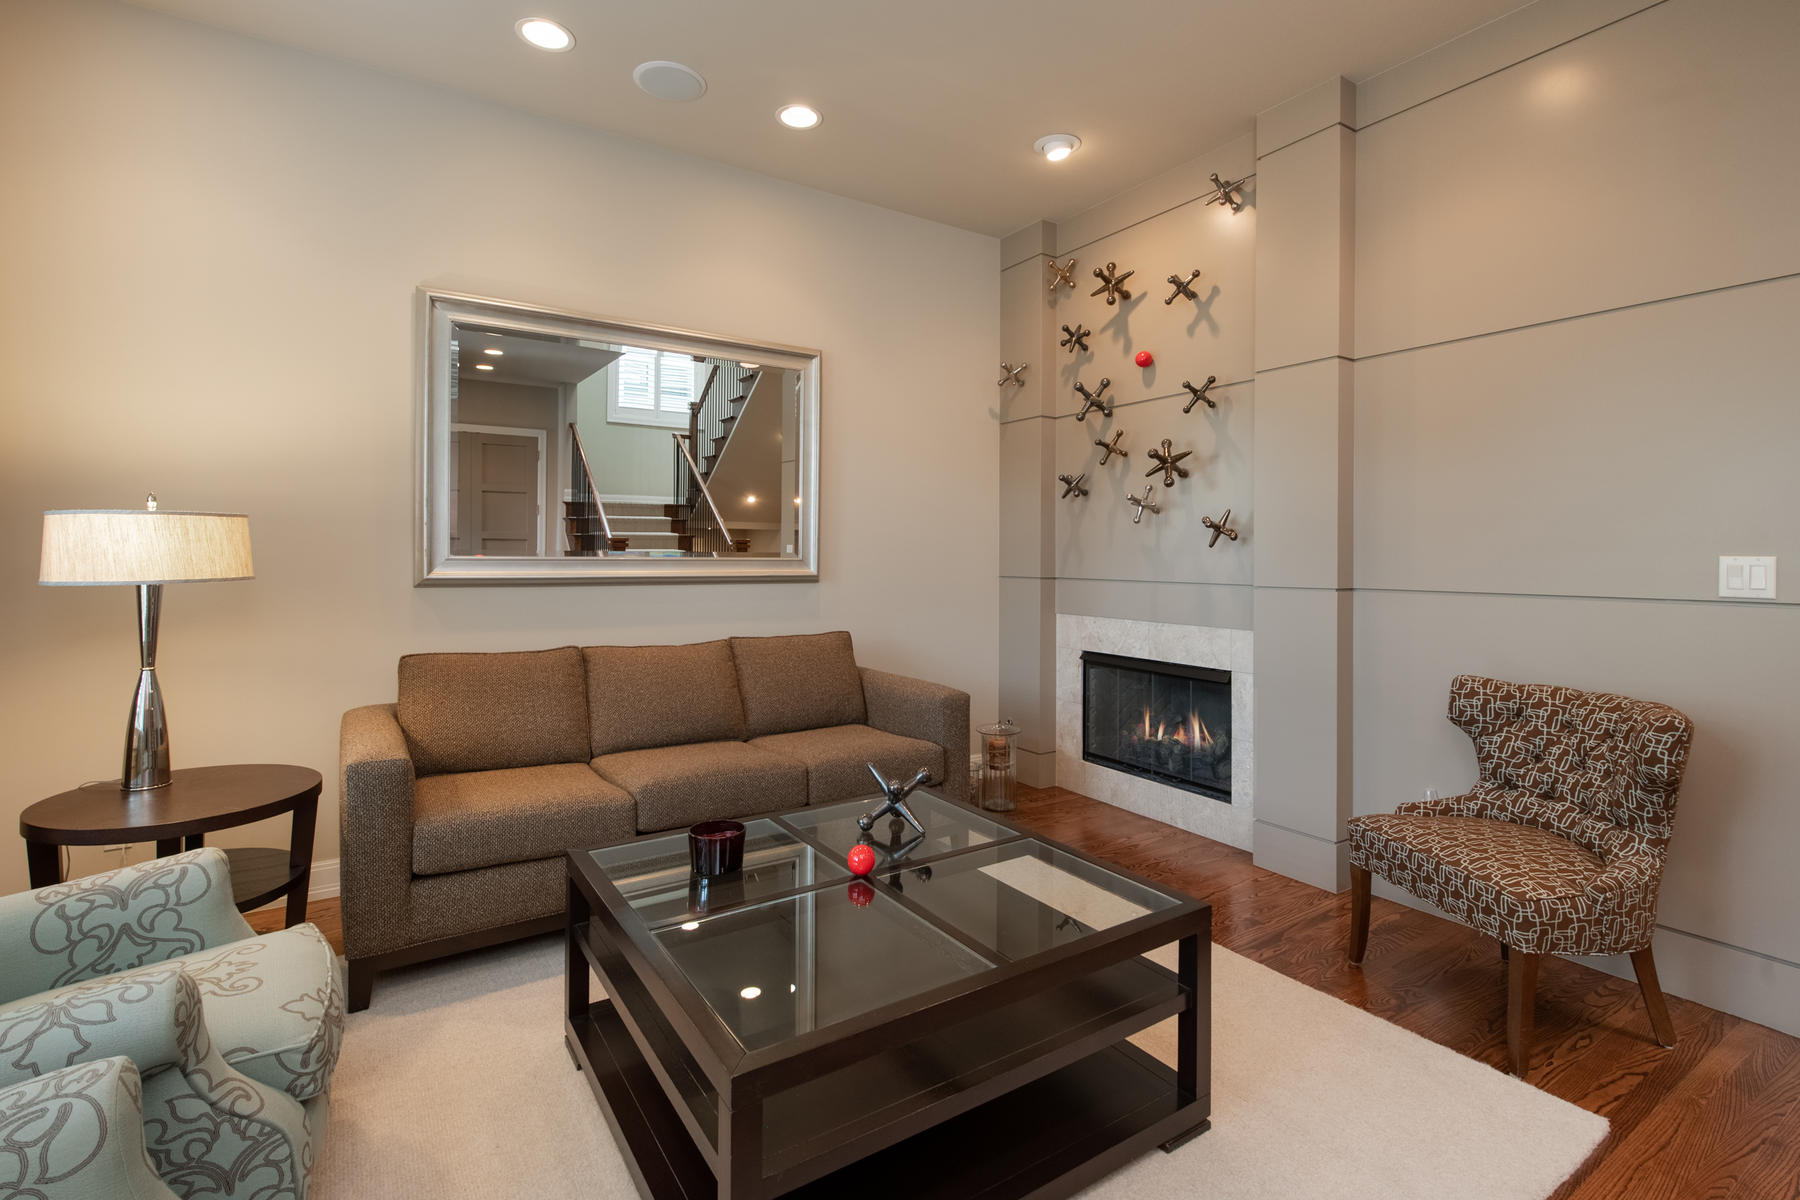 Additional photo for property listing at This Townhome Encompasses The Vibrant Lifestyle And Walk-Ability 557 Steele St Denver, Colorado 80206 United States